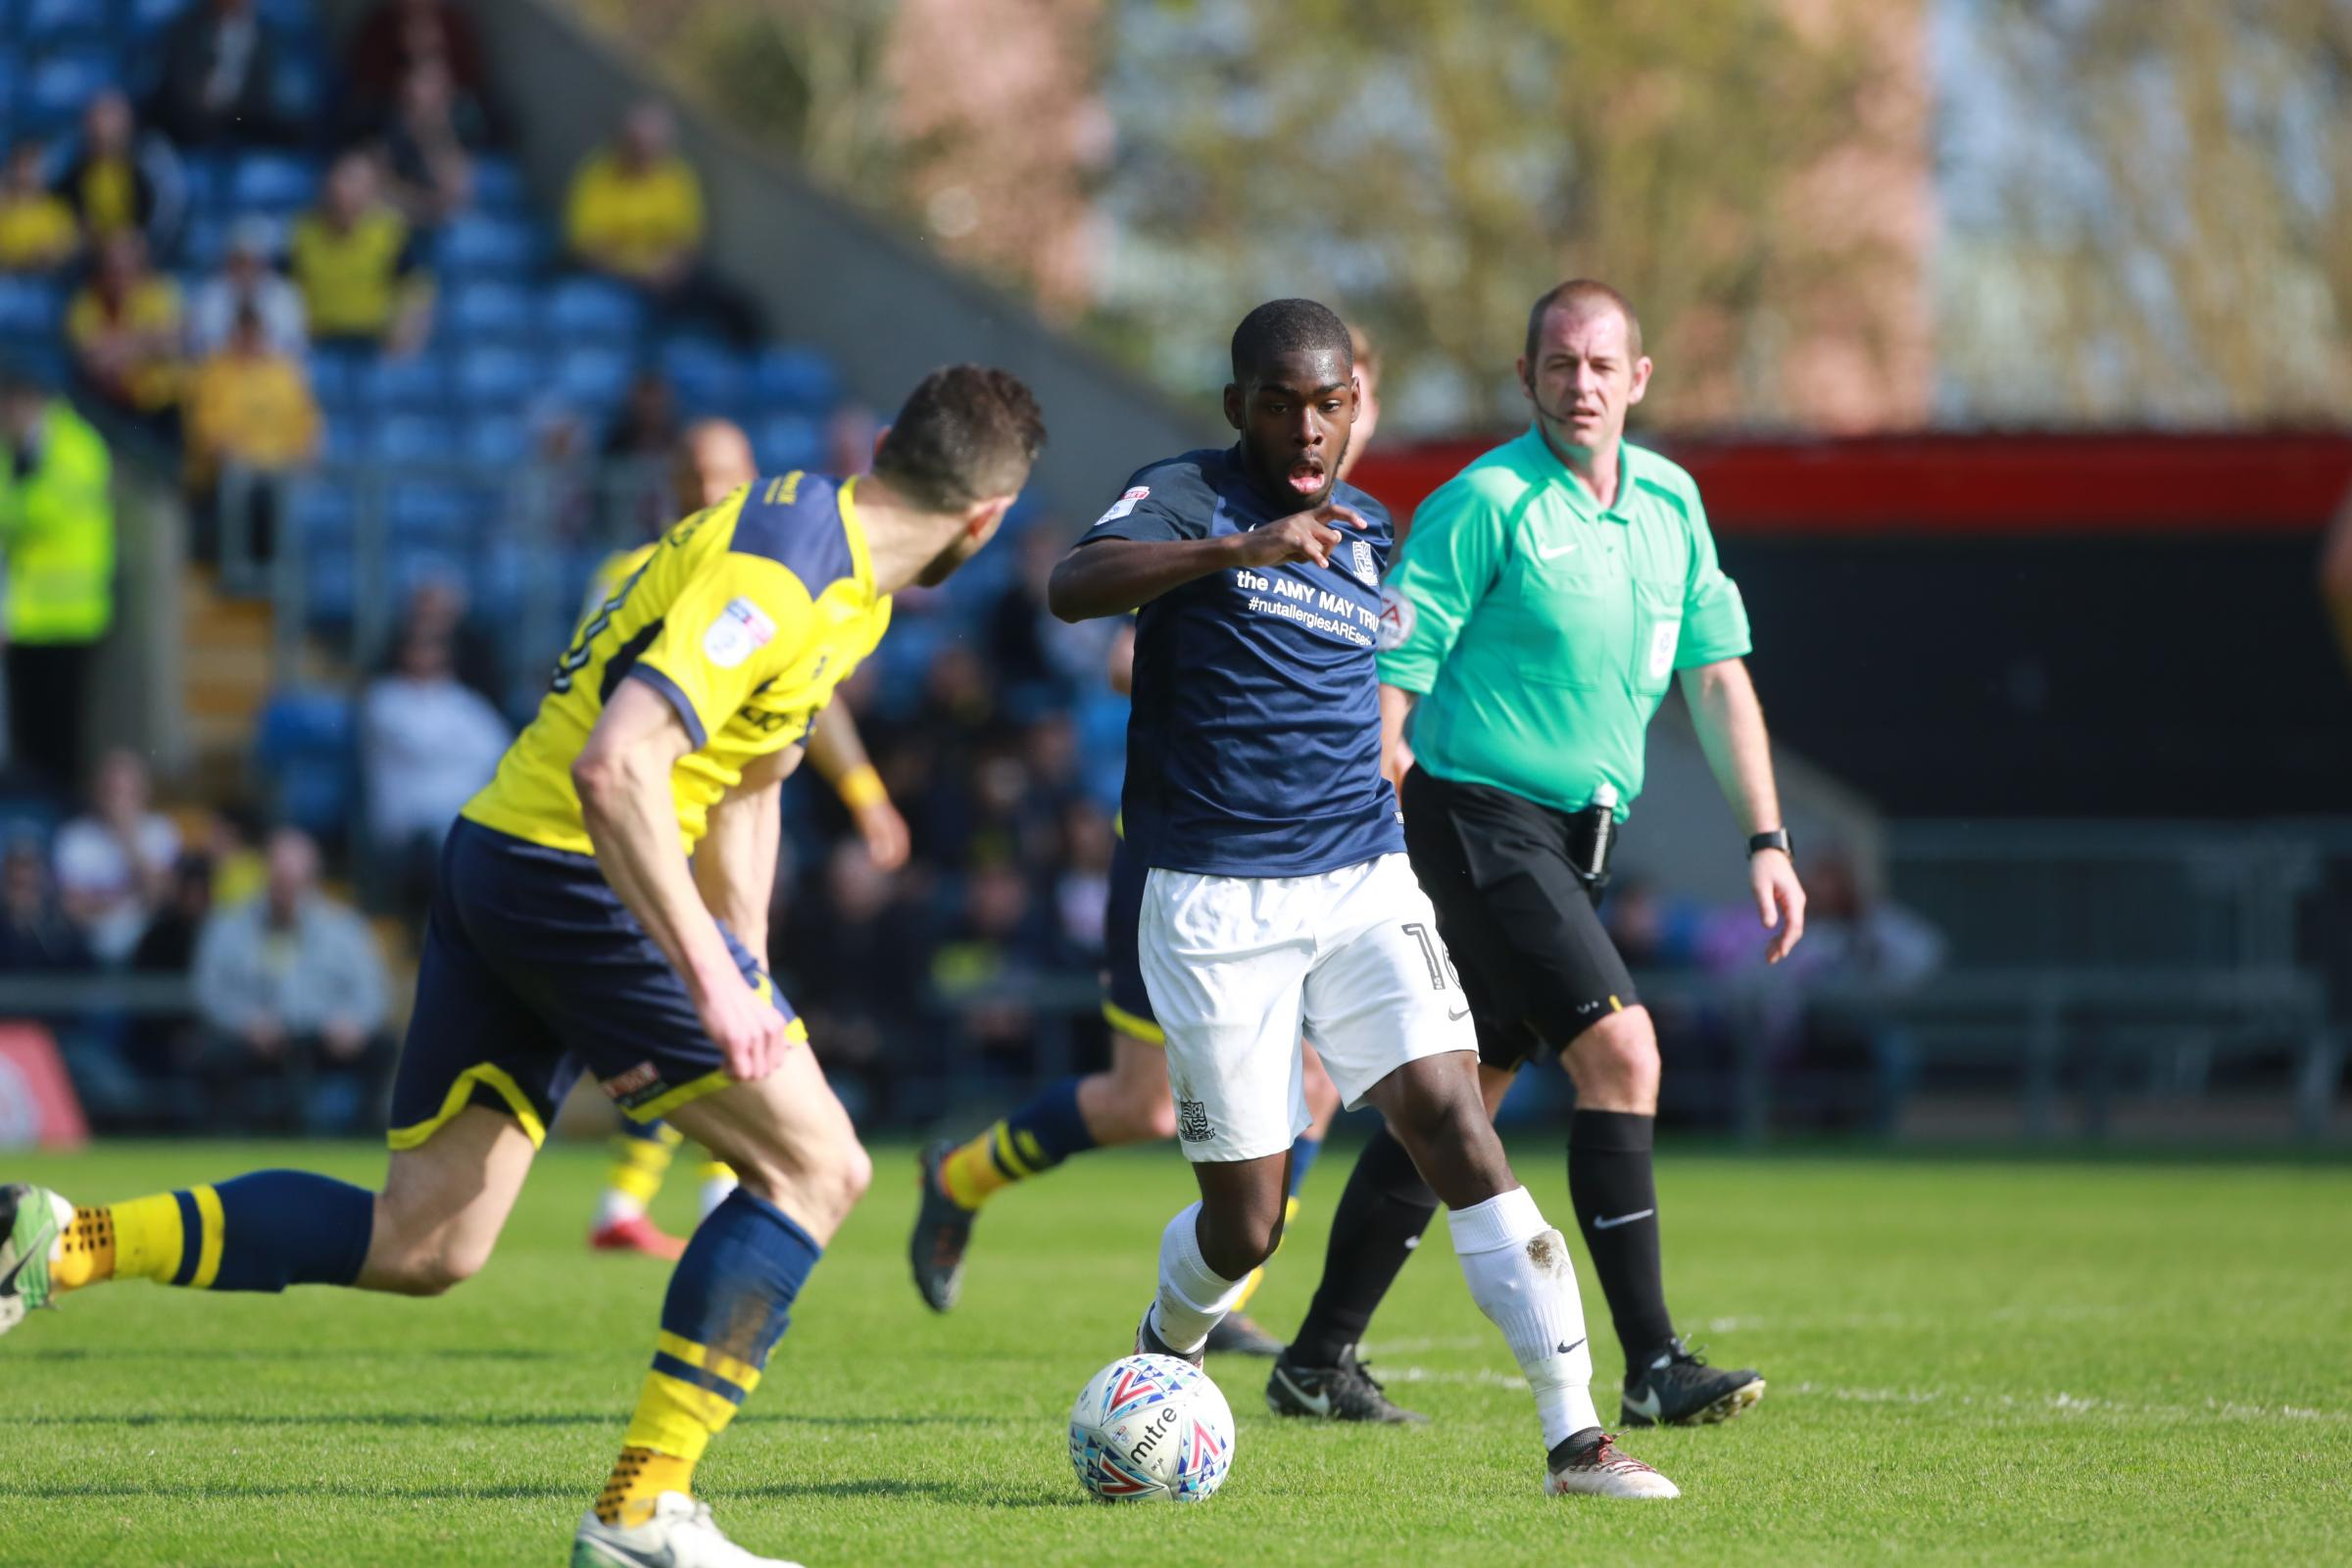 Being tracked by England - Southend United midfielder Dru Yearwood